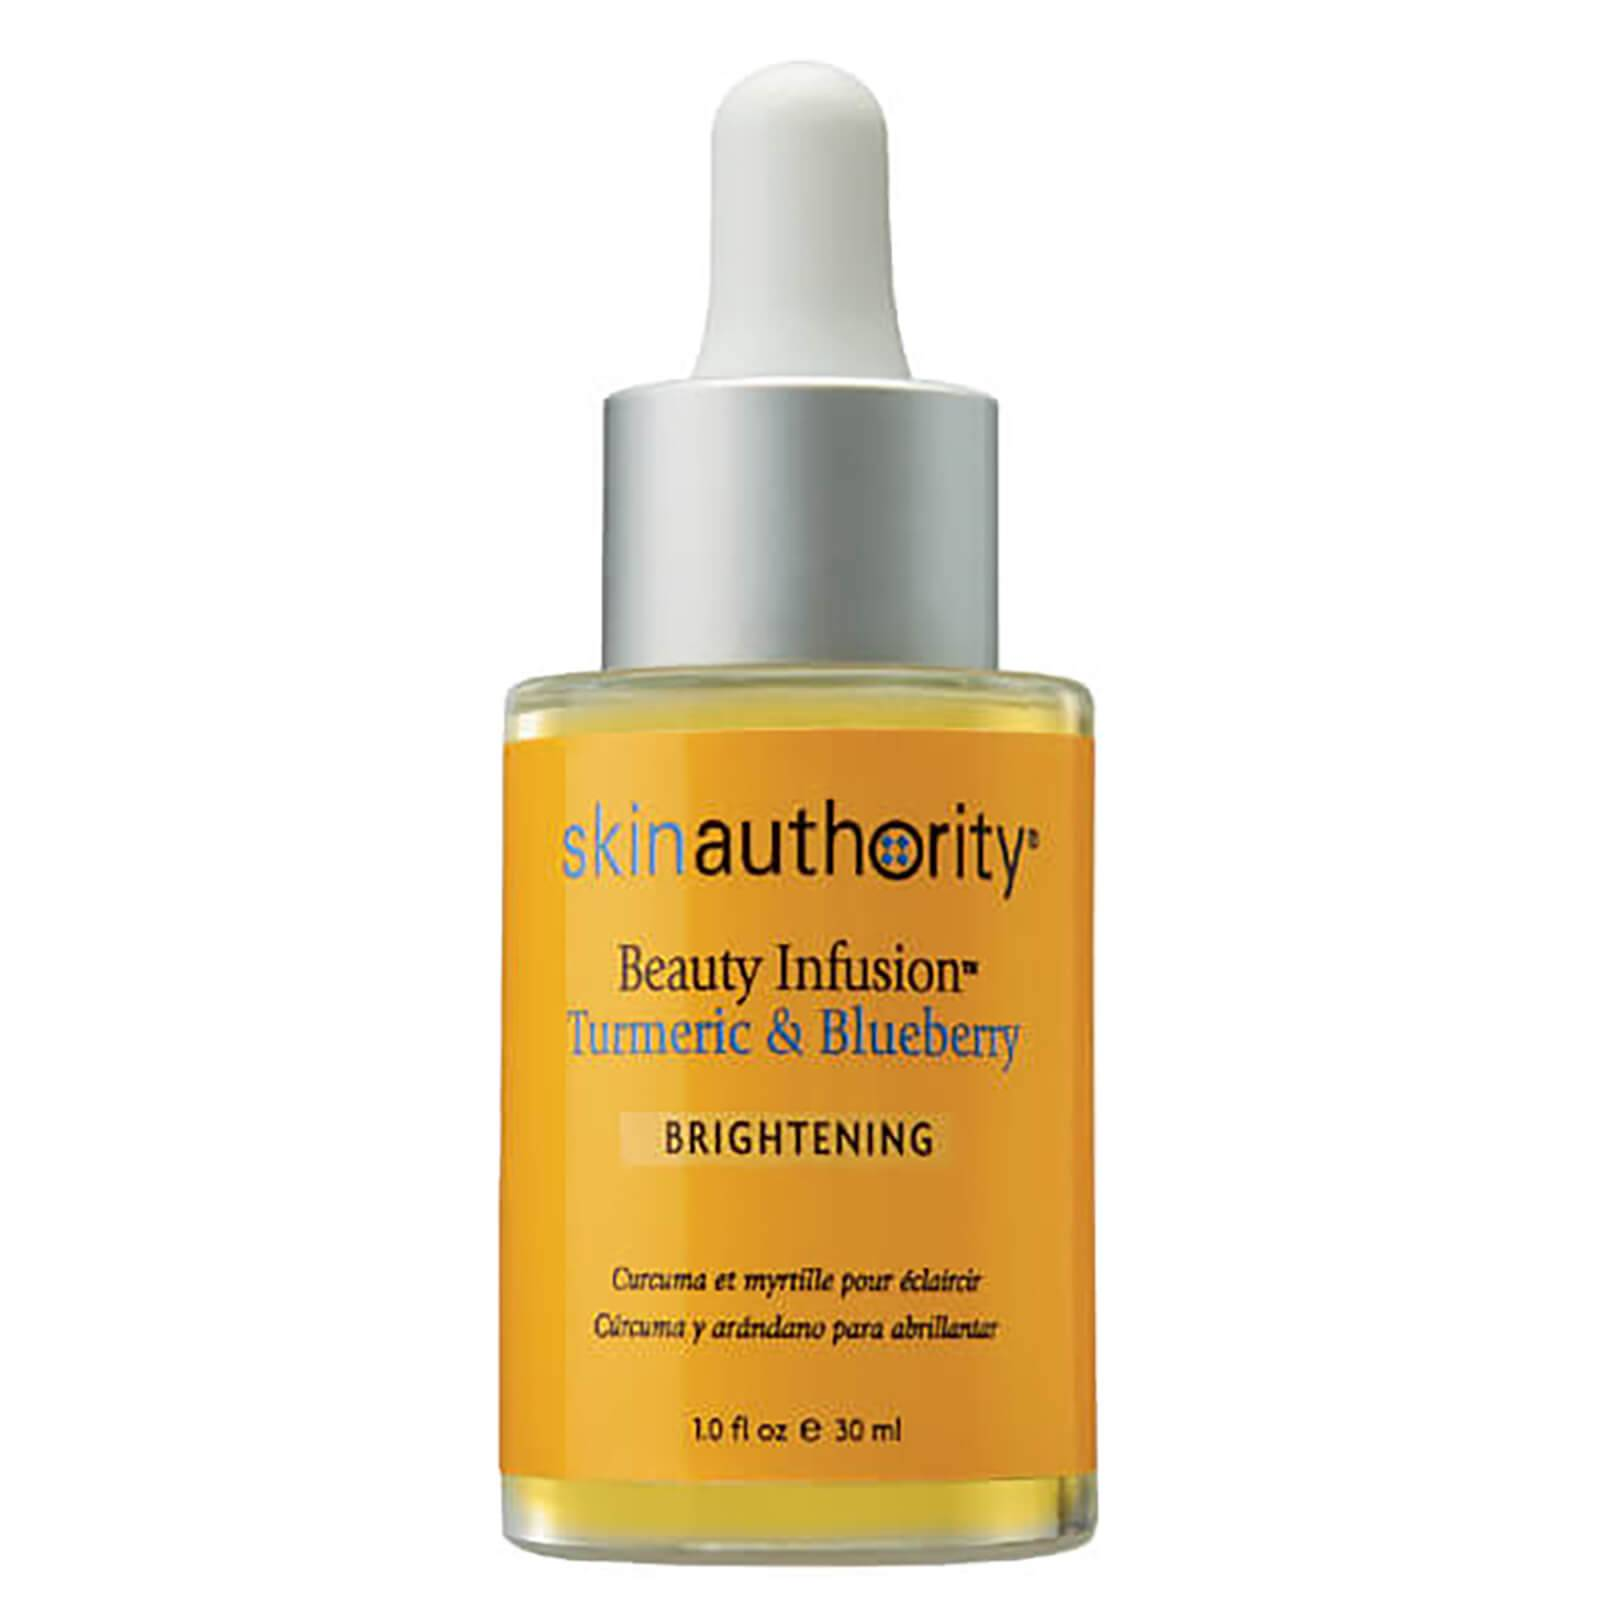 Skin Authority Huile Éclaircissante au Curcuma et à la Myrtille Beauty Infusion™ Skin Authority